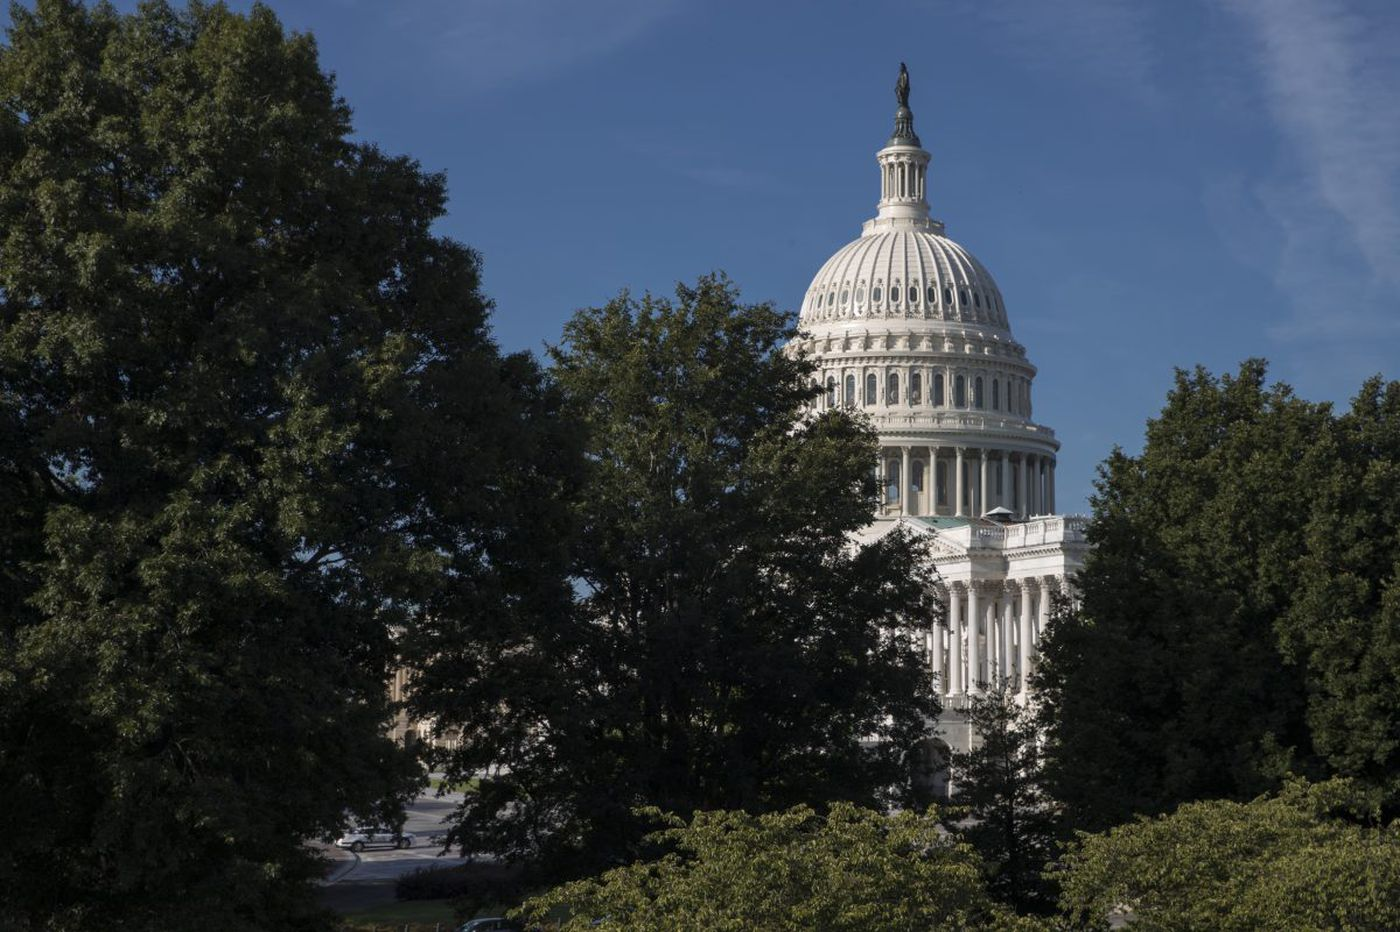 To boost economy, Congress must deliver on tax reform